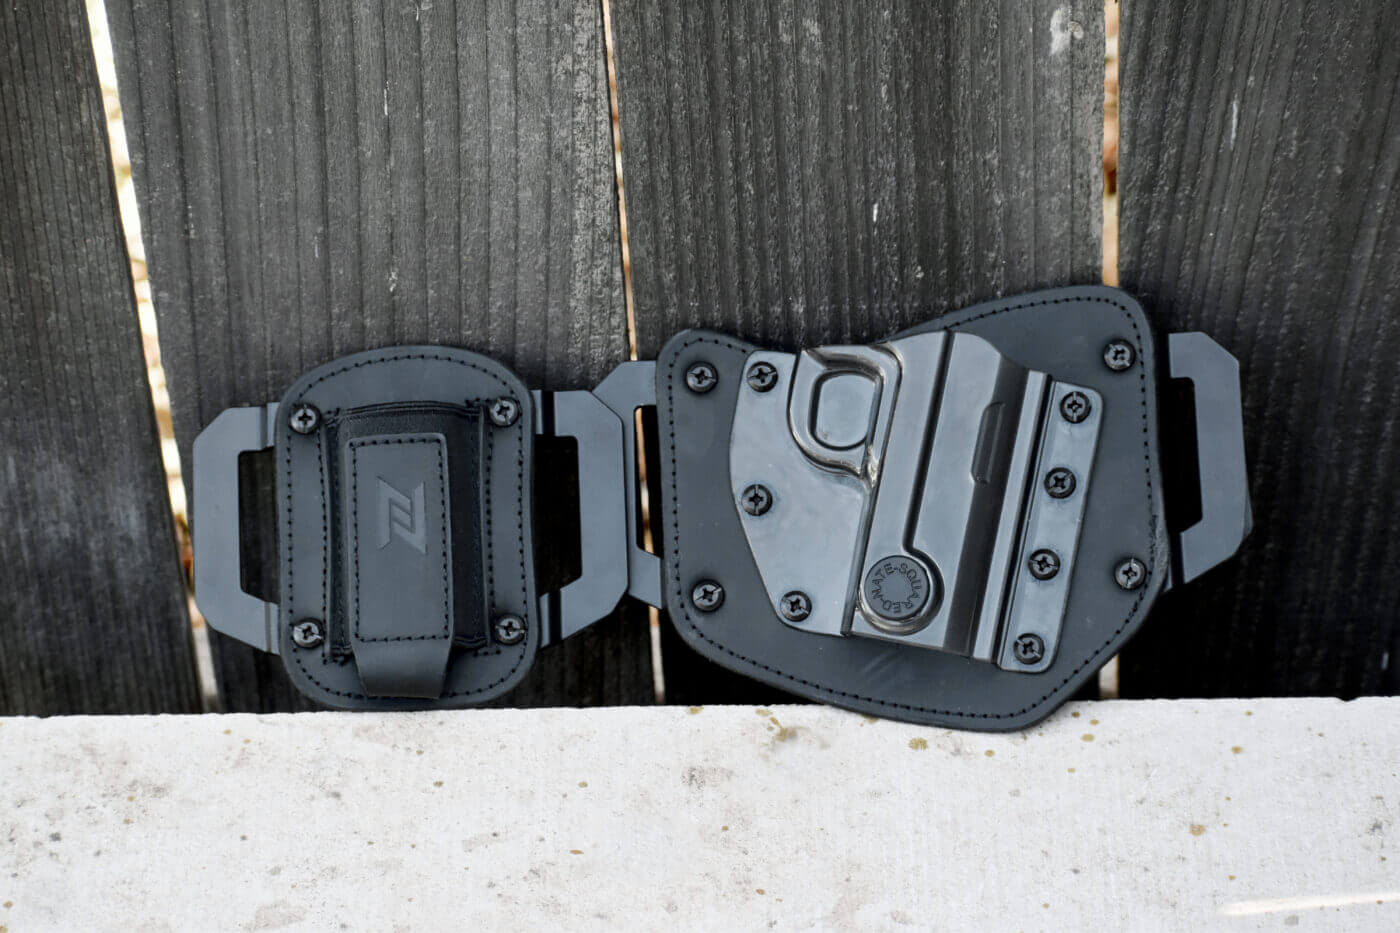 N8 Tactical holster and mag carrier